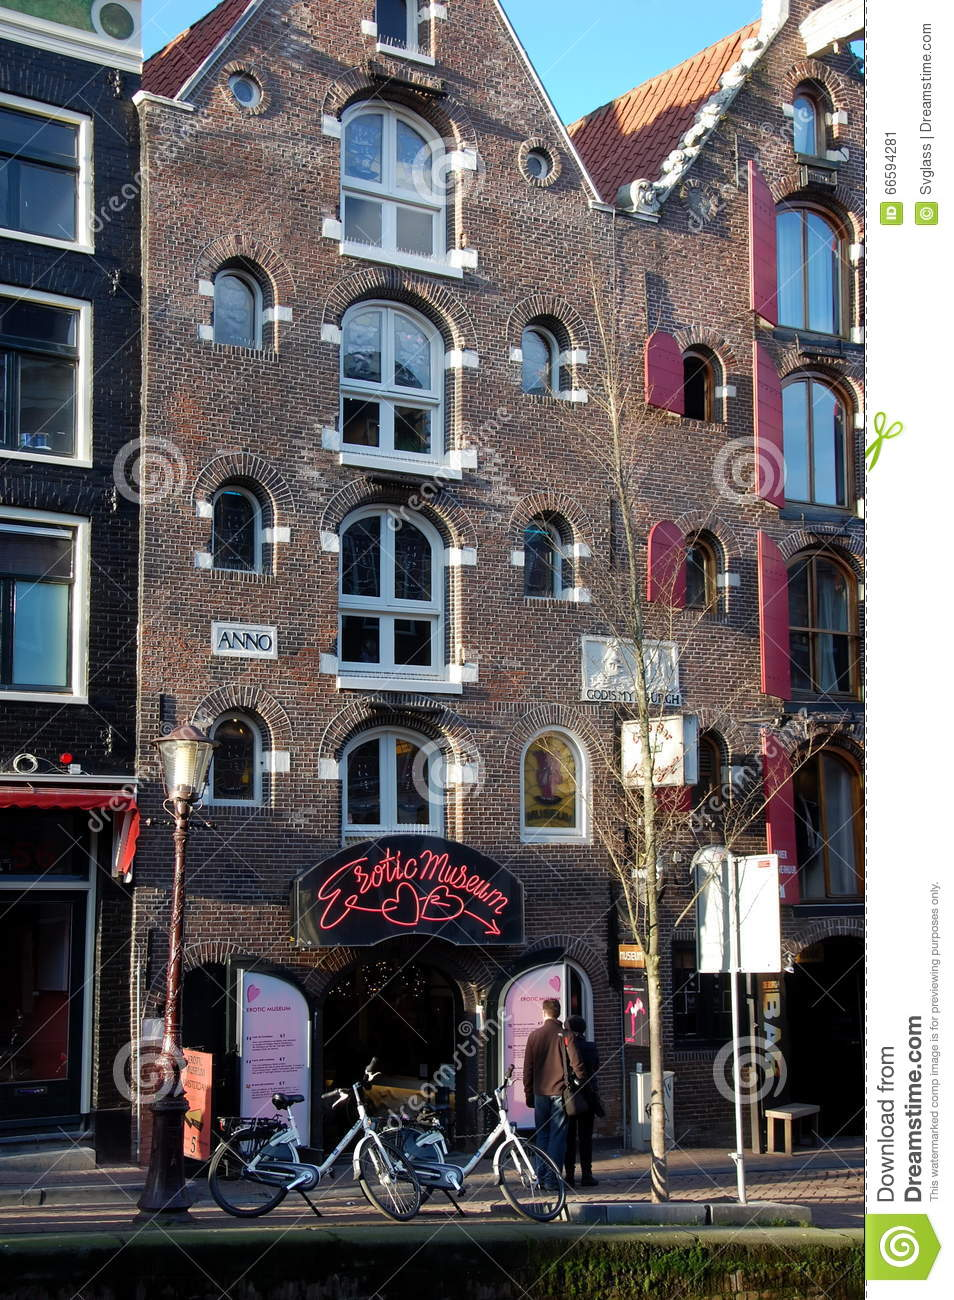 With Amsterdam tour erotic